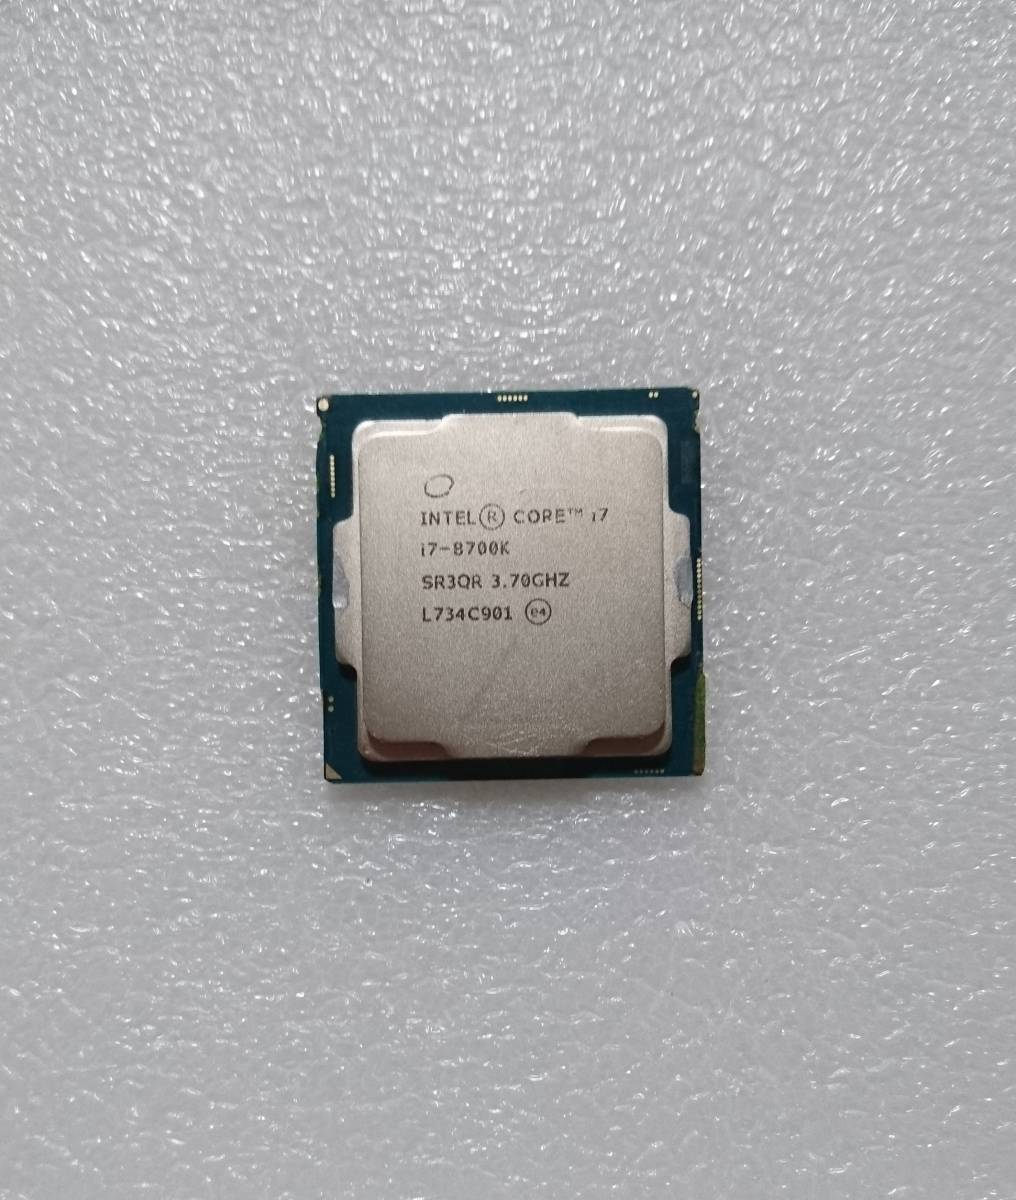 ☆ intel Core i7-8700K SR3QR 3.7GHz LGA1151 インテル CPU 第8世代 ☆